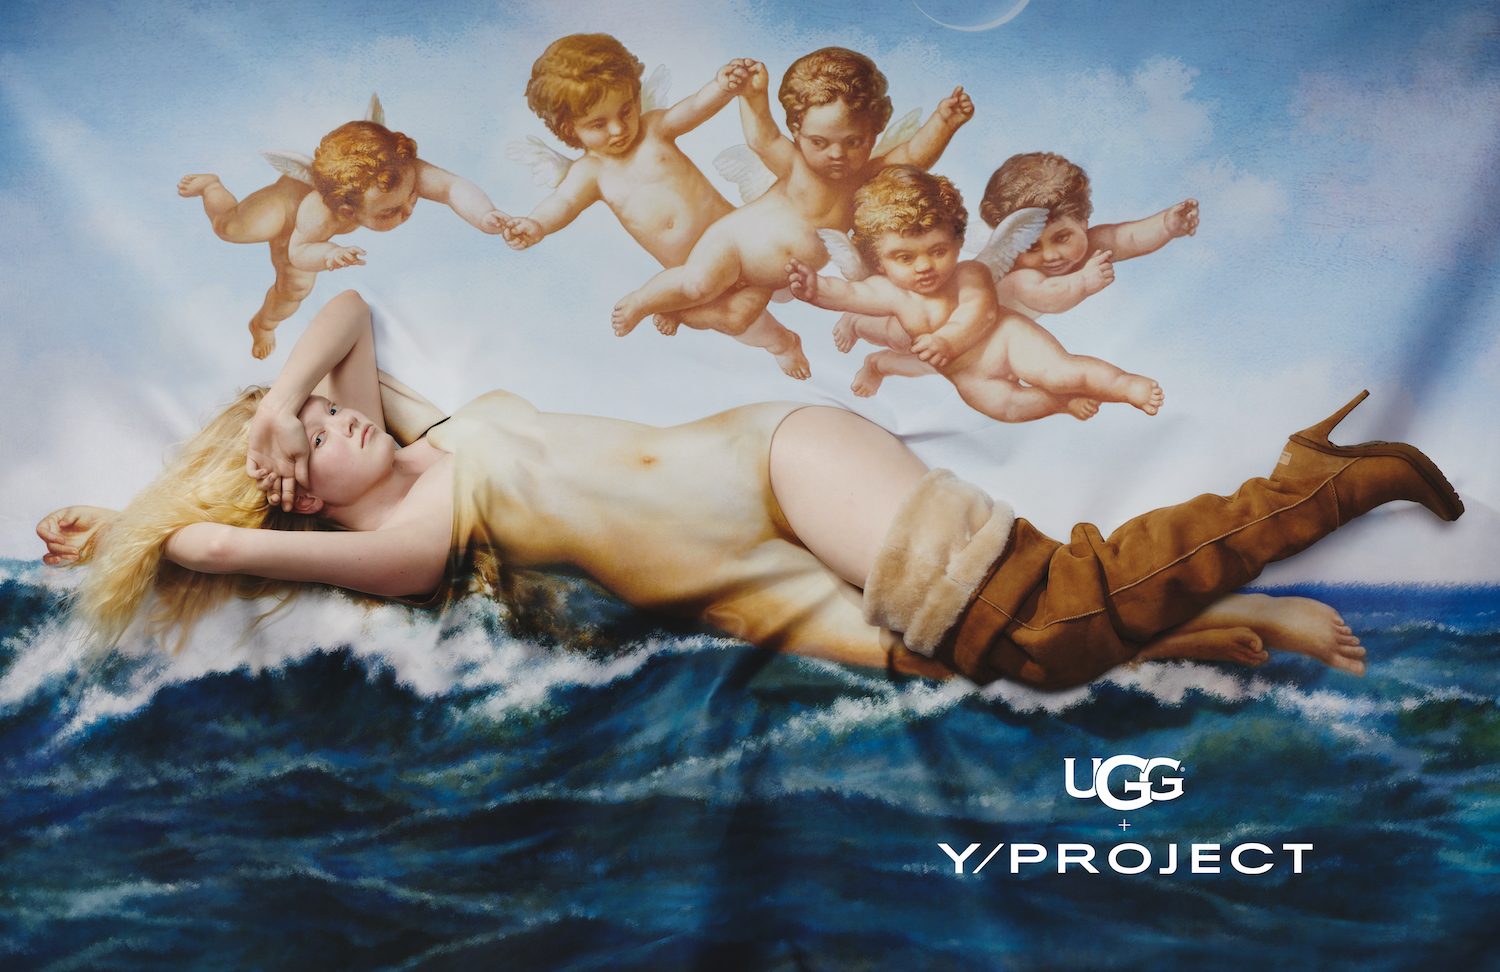 UGG X Y/Project Reveal Global Collaborative Campaign